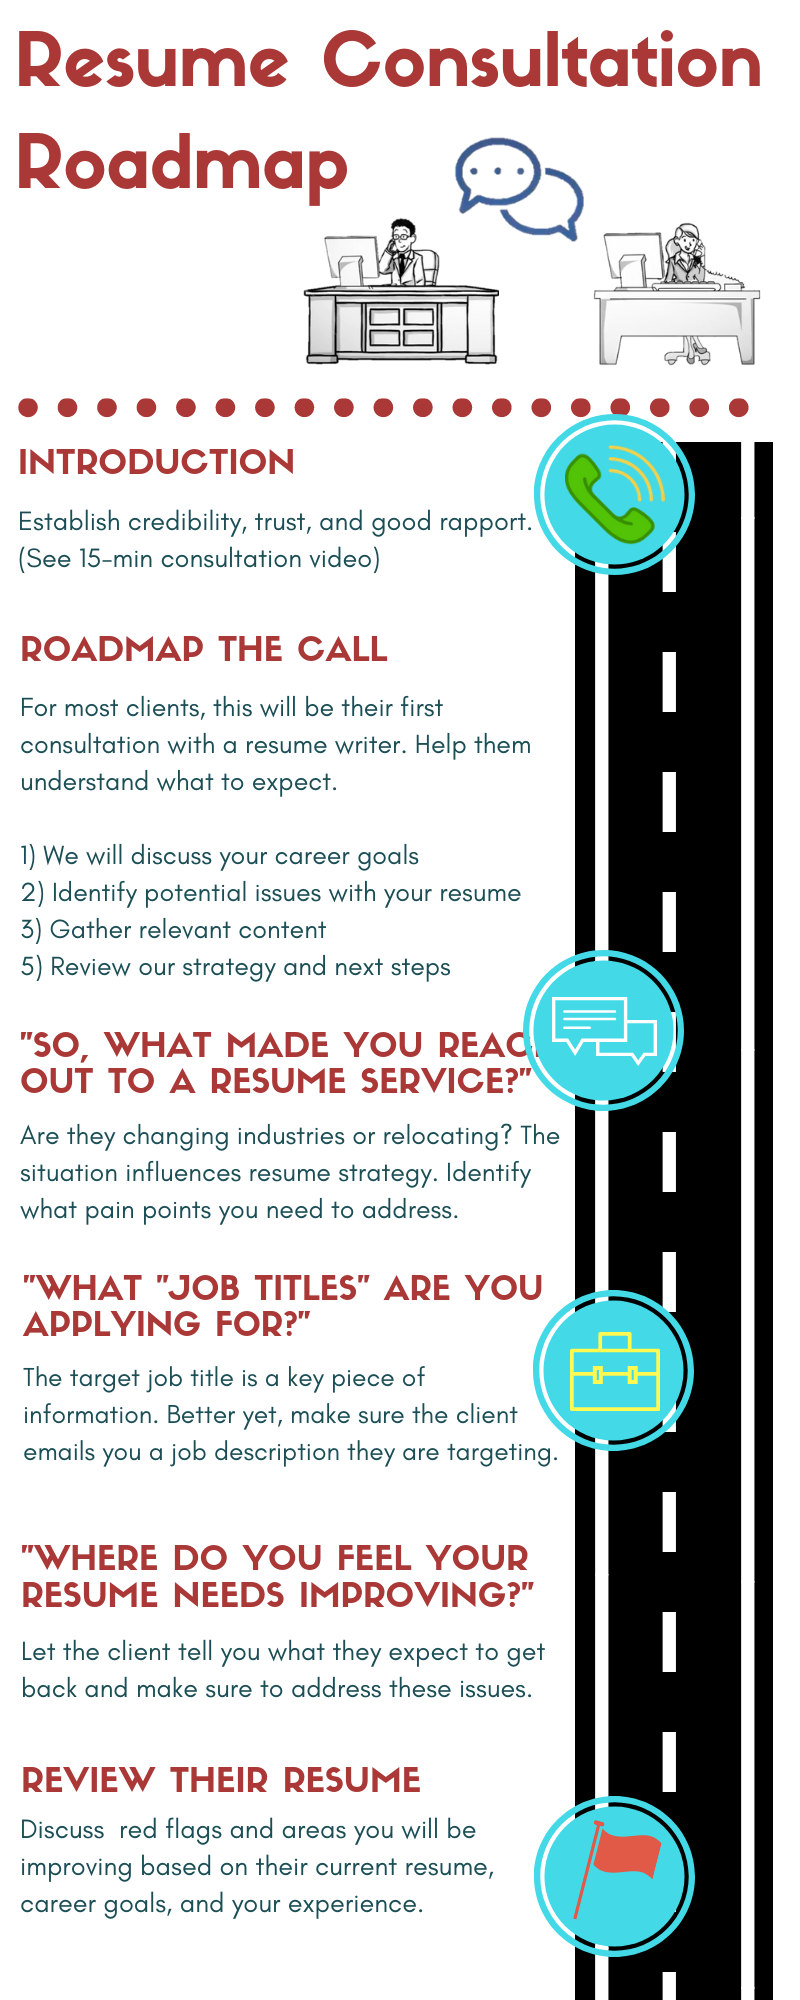 Resume Consultation Infographic (1).png